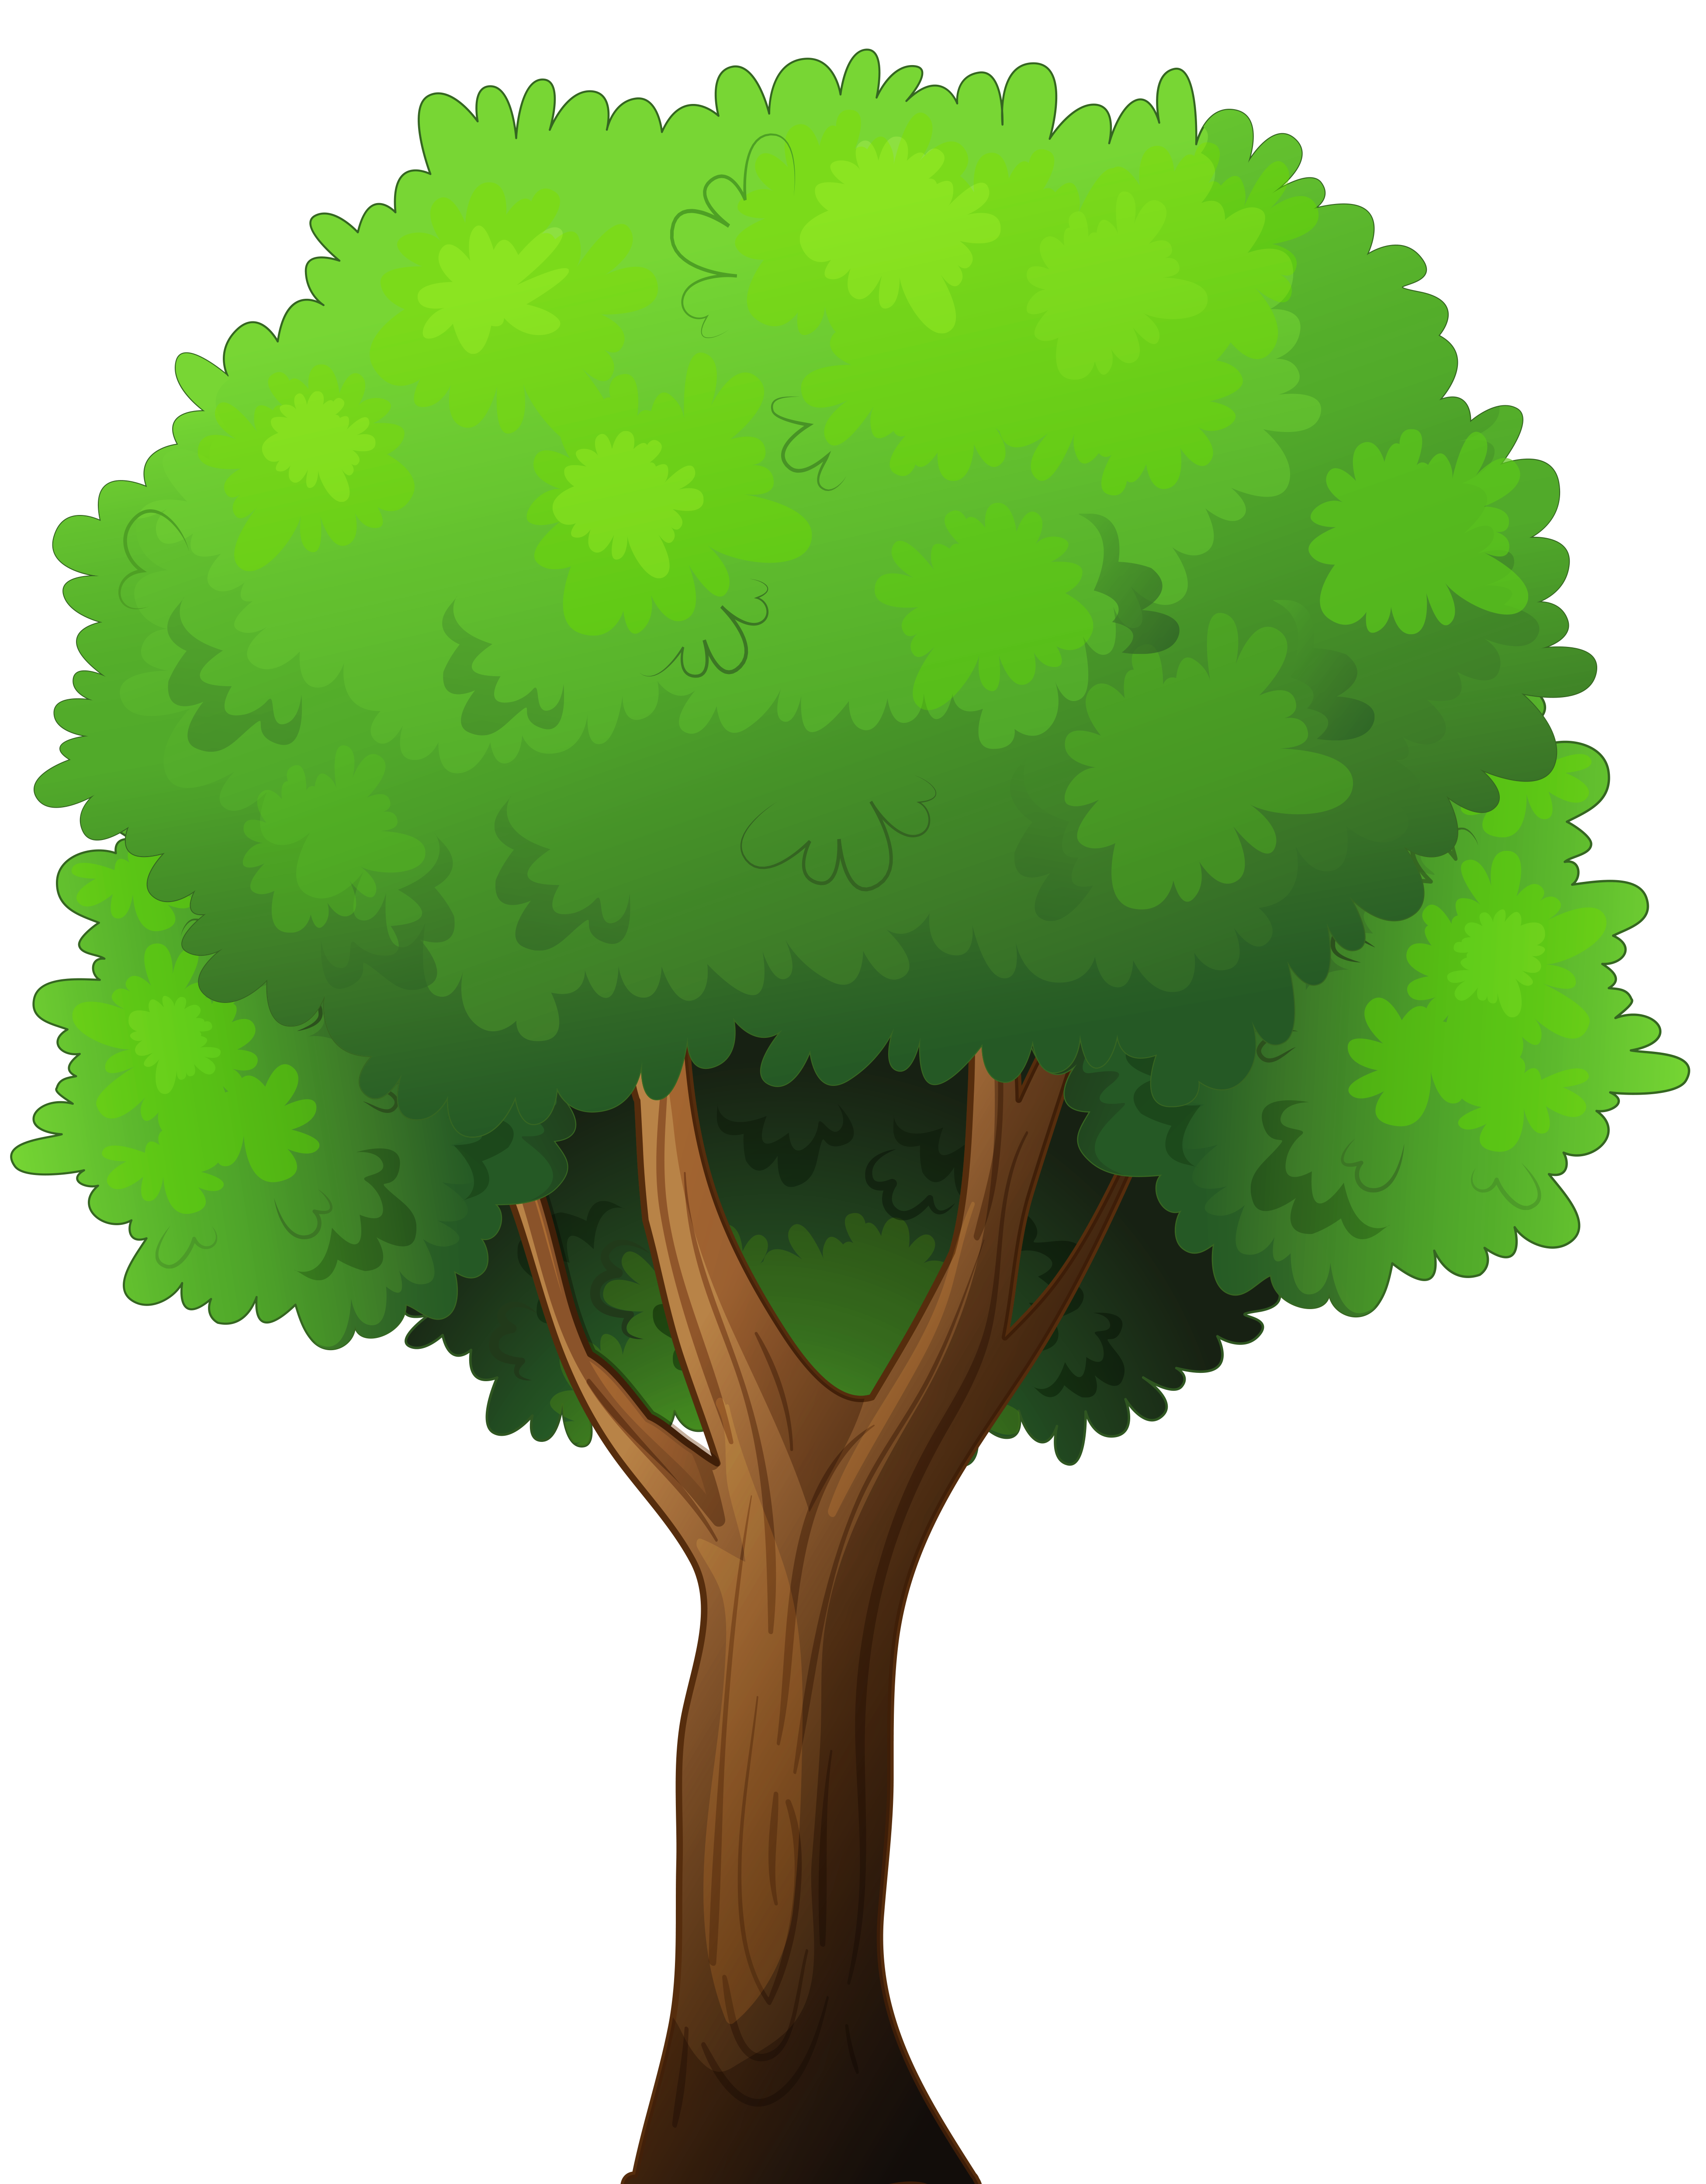 Tree clipart high resolution. Png clip art best